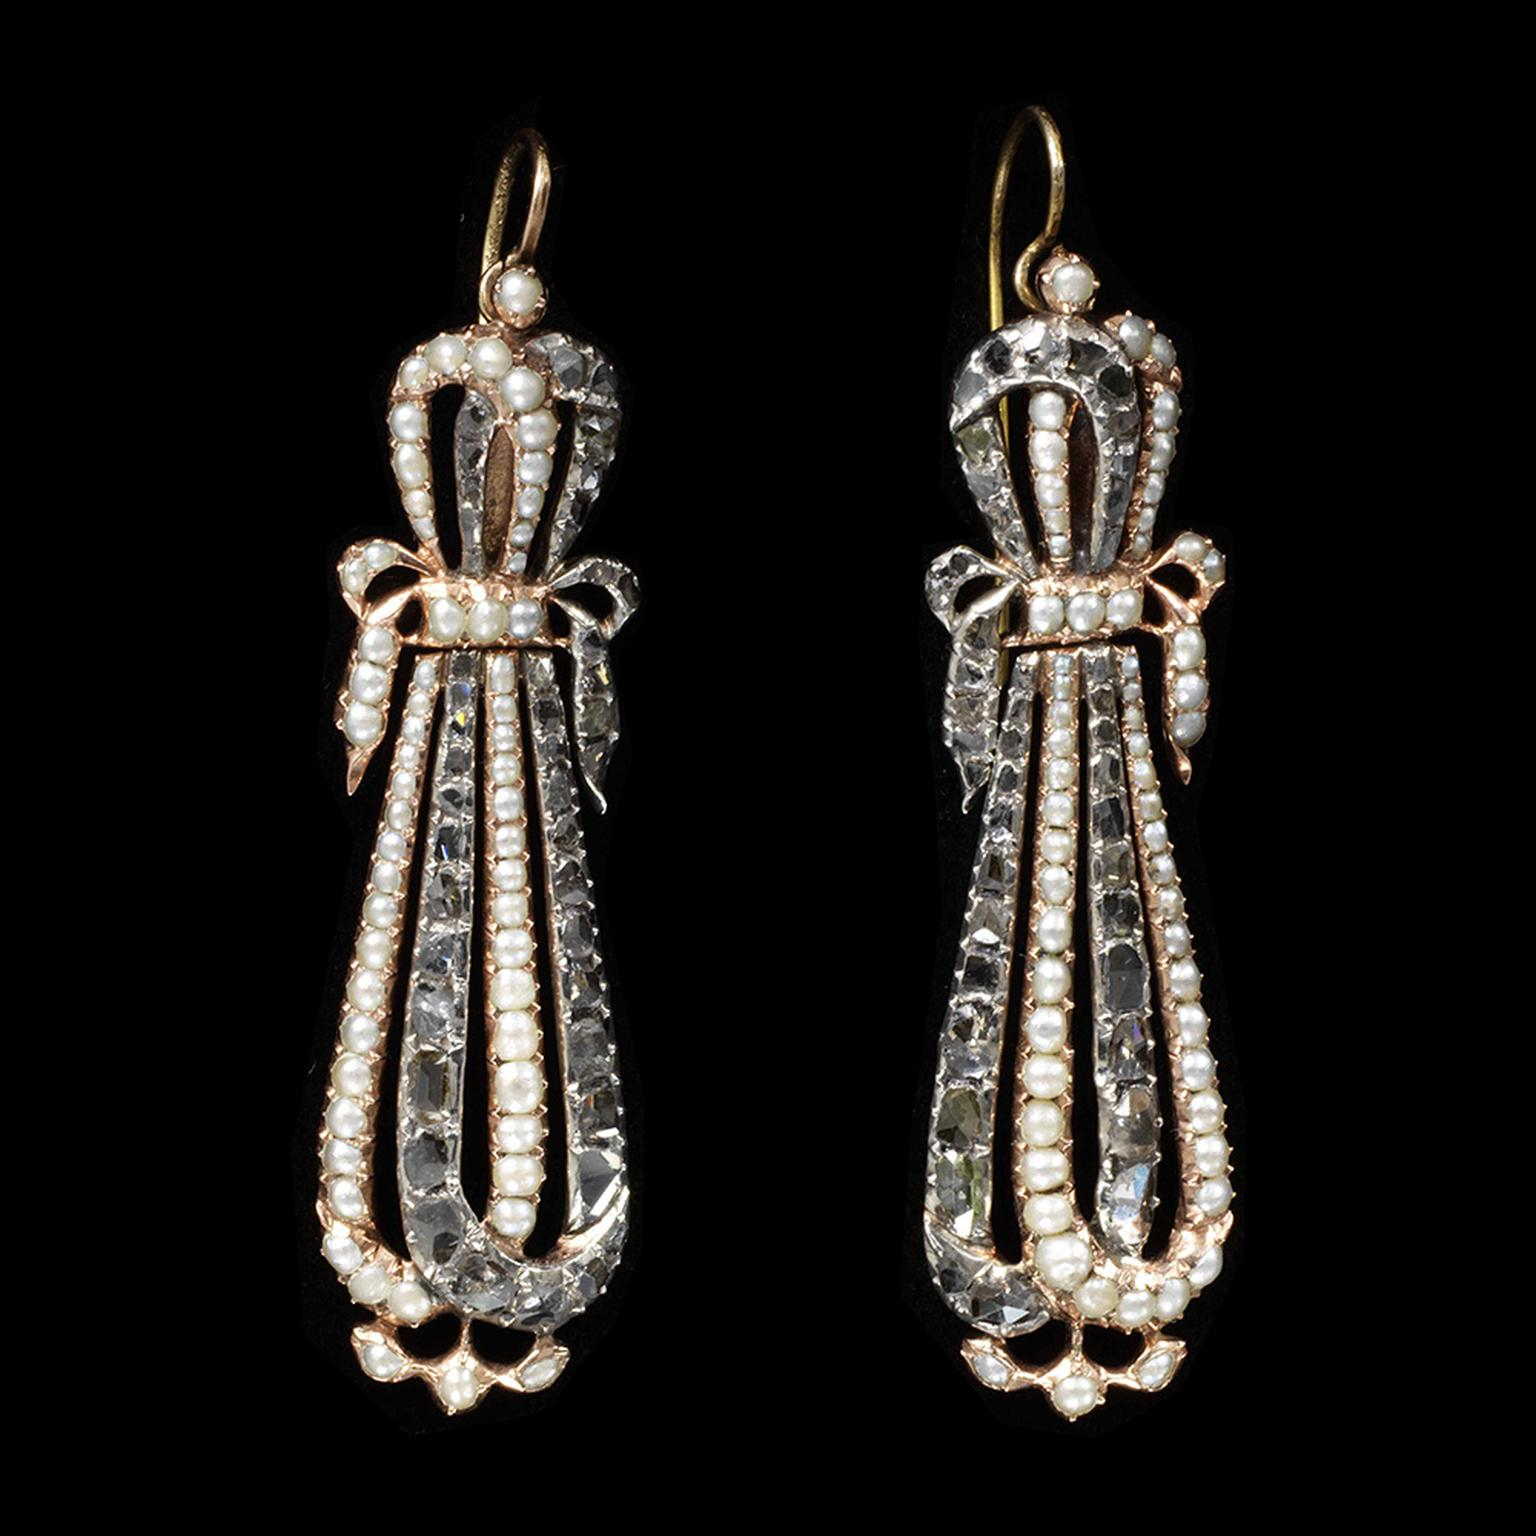 1EarringsgoldwithpearlsdiamondsFrance1795to1810